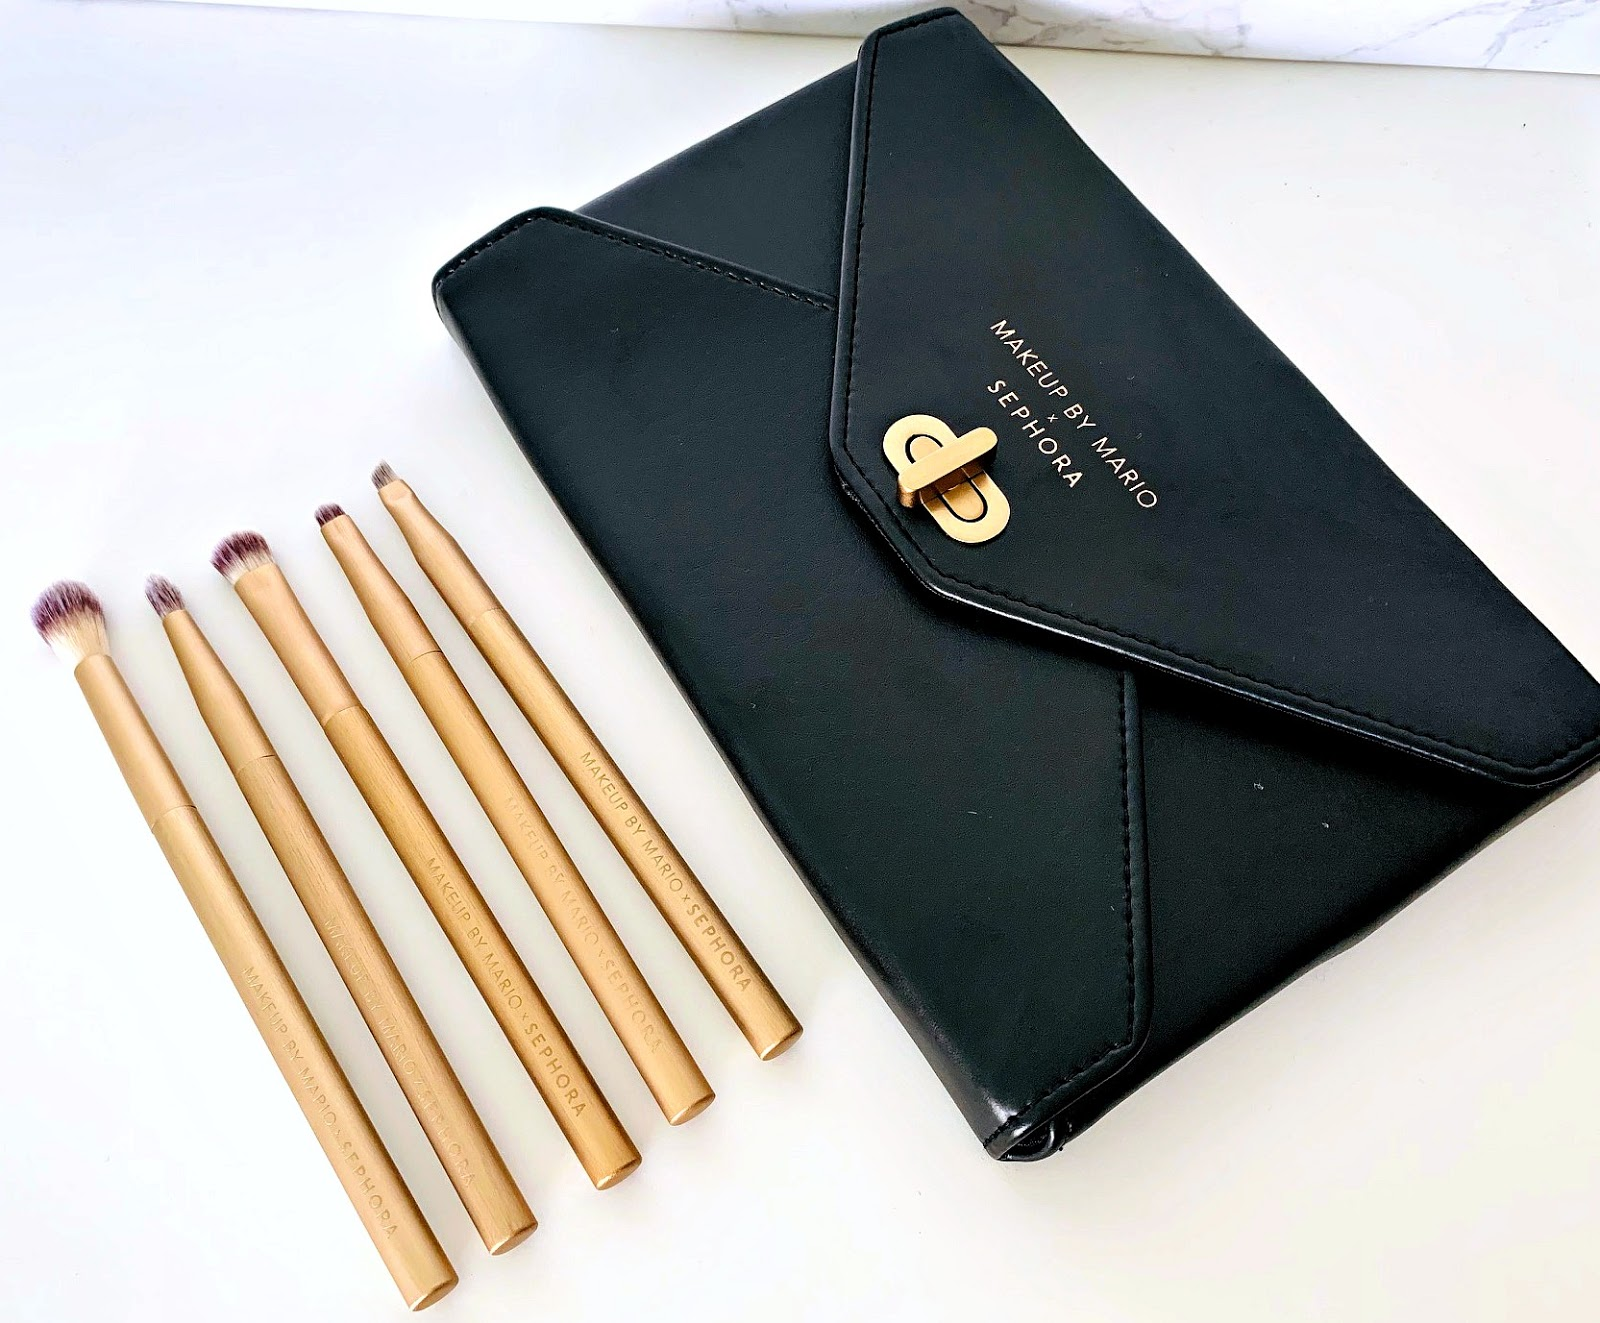 Makeup By Mario X Sephora Eye Brush Set Review